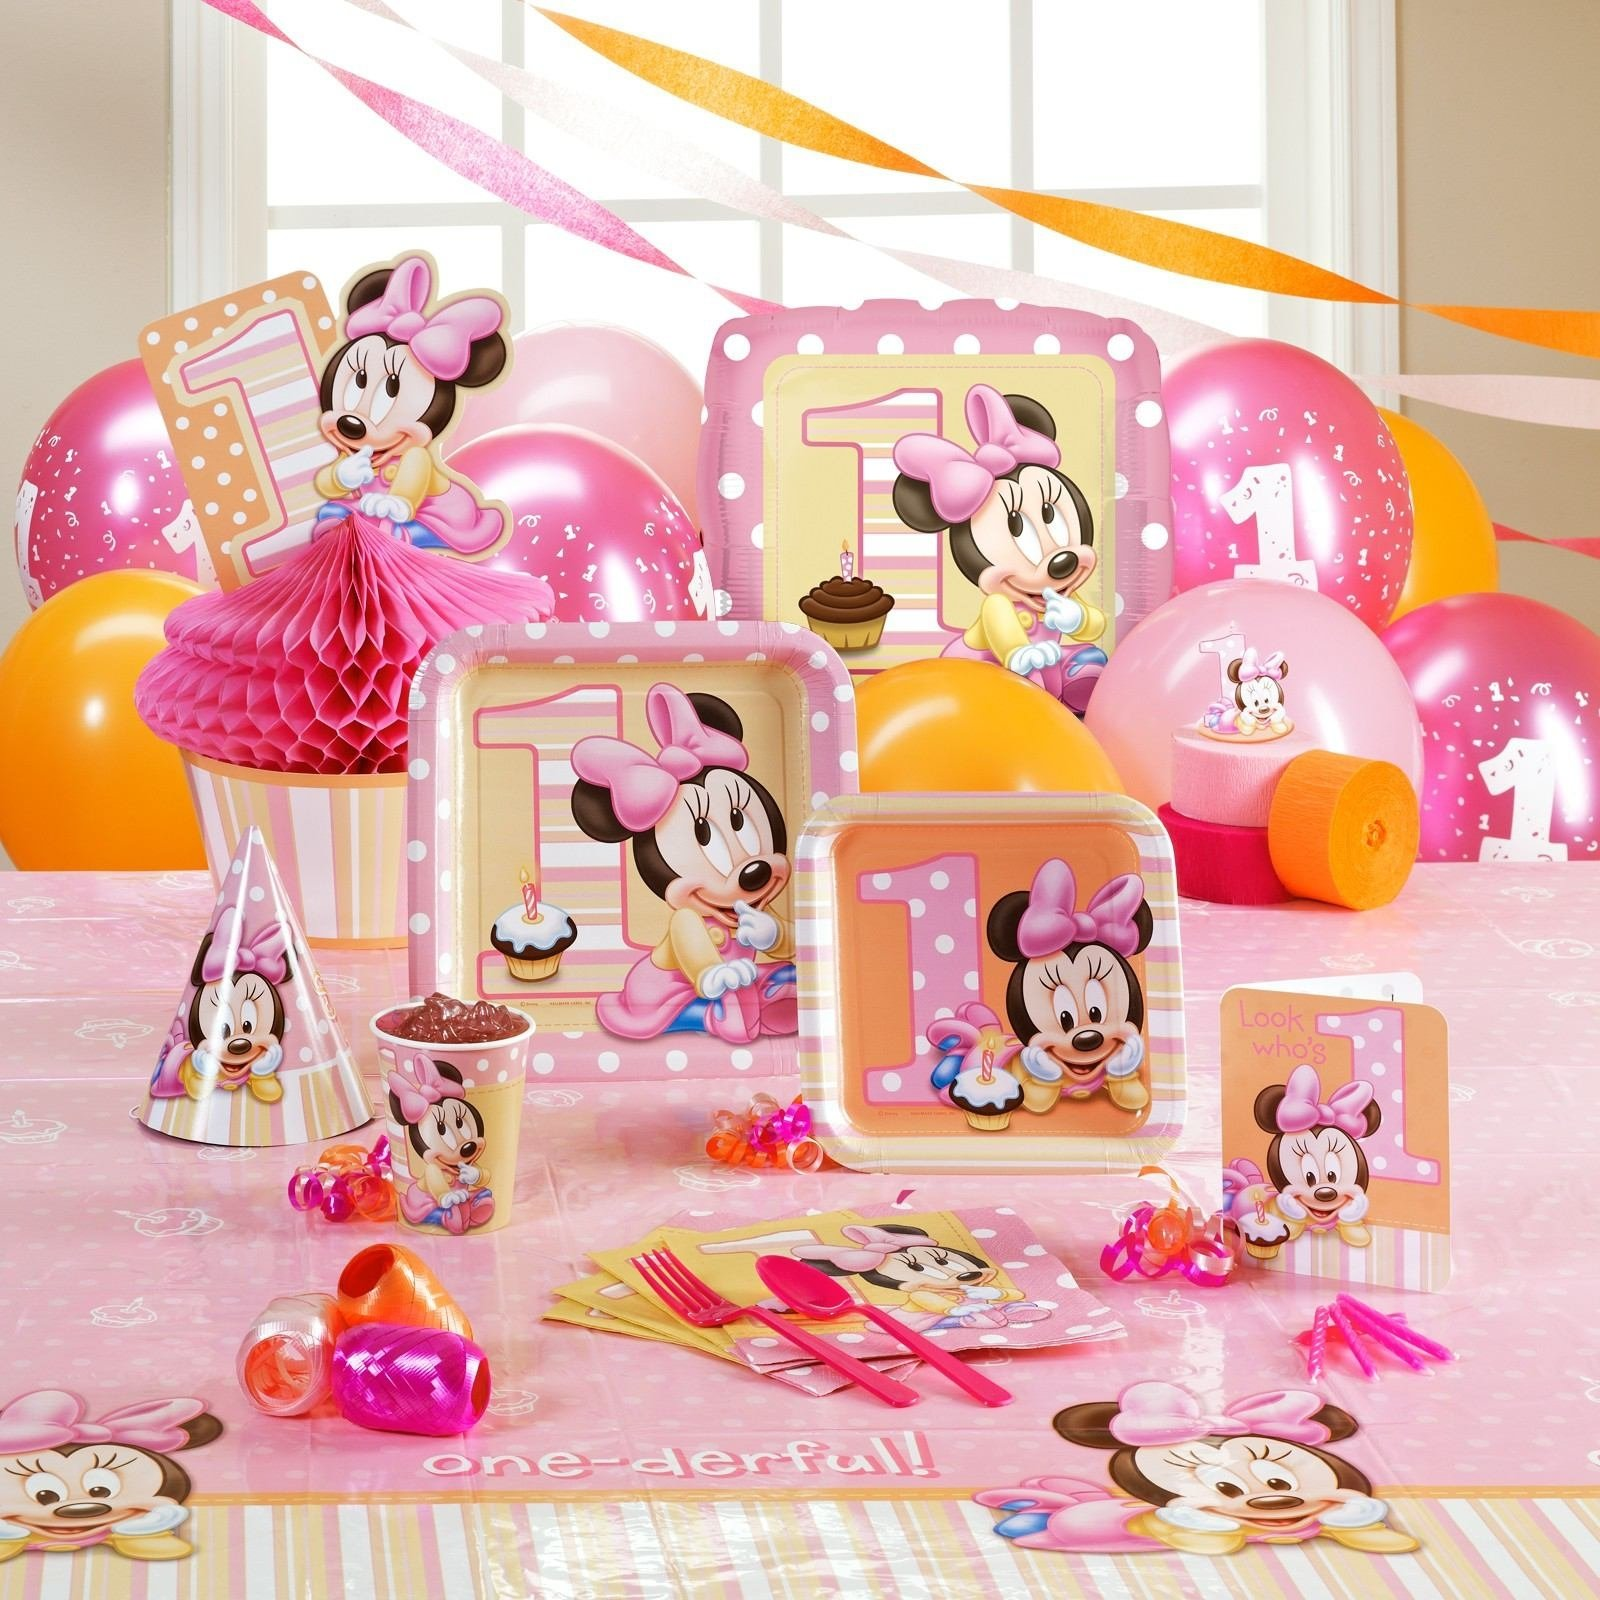 10 Fashionable Birthday Party Ideas For A 1 Year Old Girls Themes Best Decorations